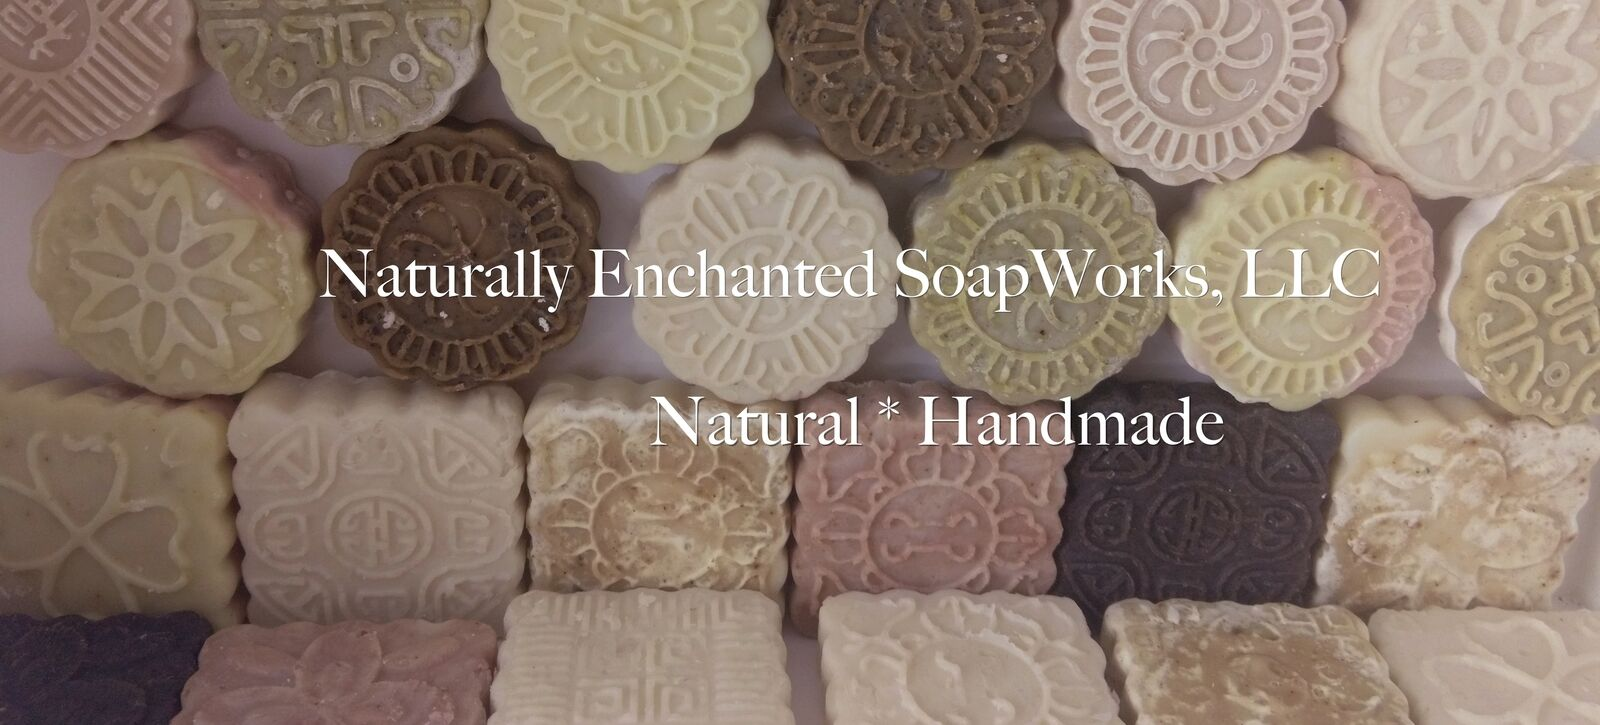 Naturally Enchanted SoapWorks